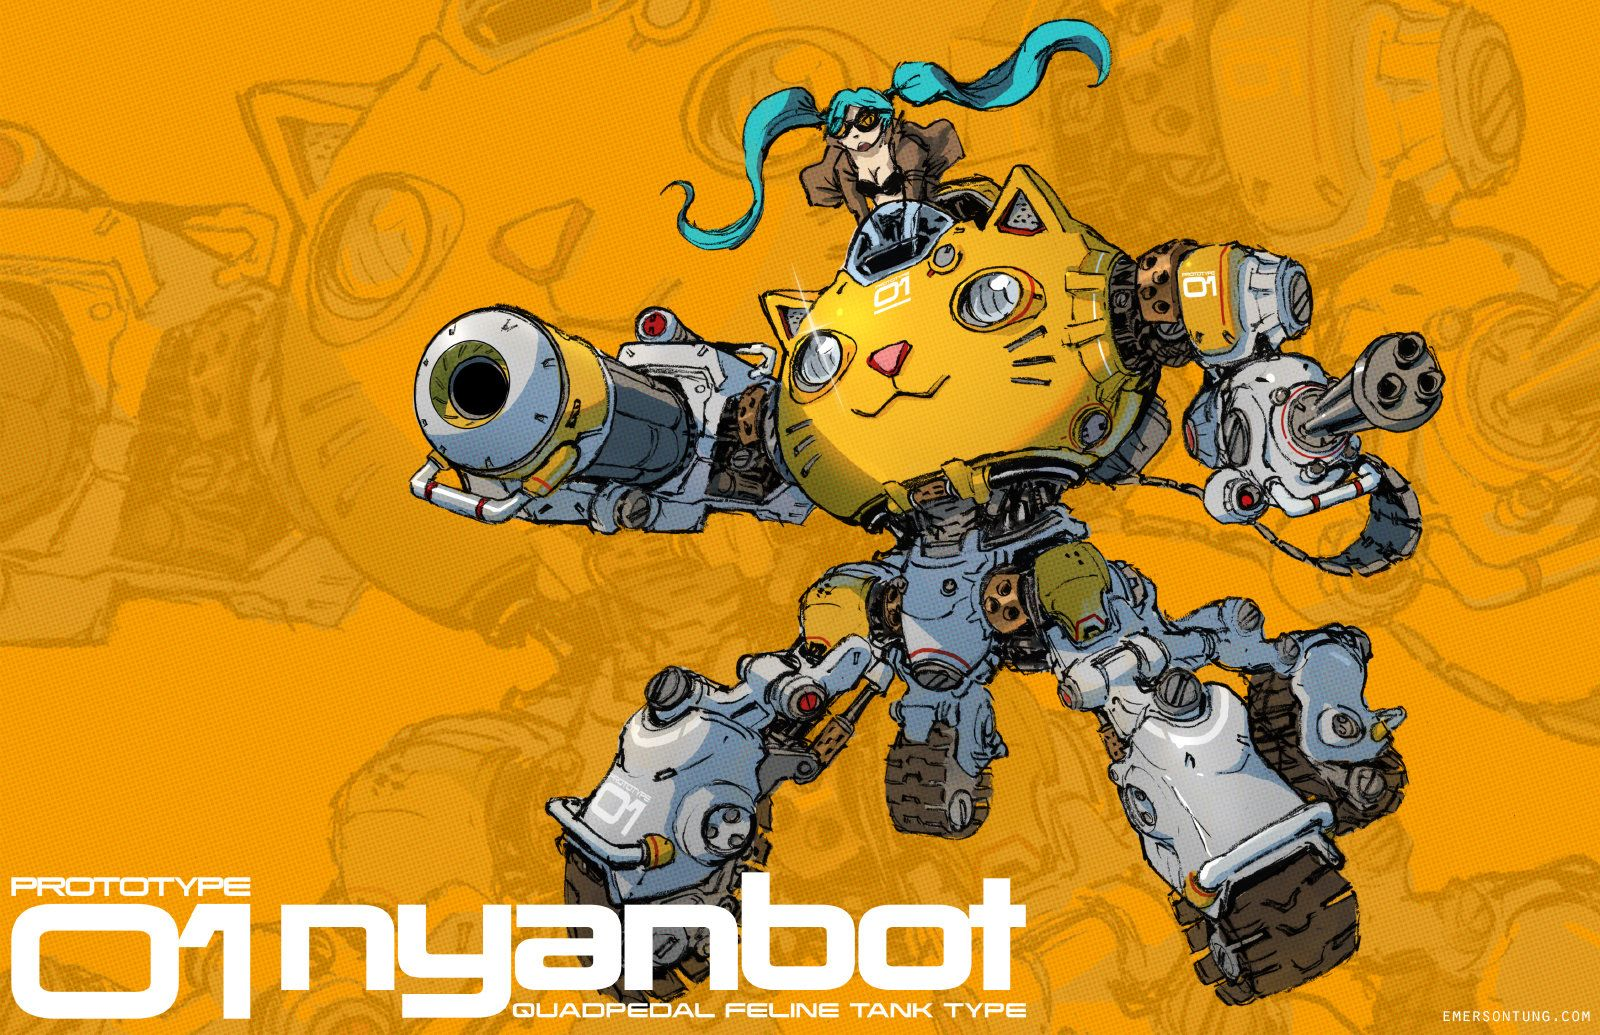 Nyanbot , Emerson Tung on ArtStation at https://www.artstation.com/artwork/nyanbot